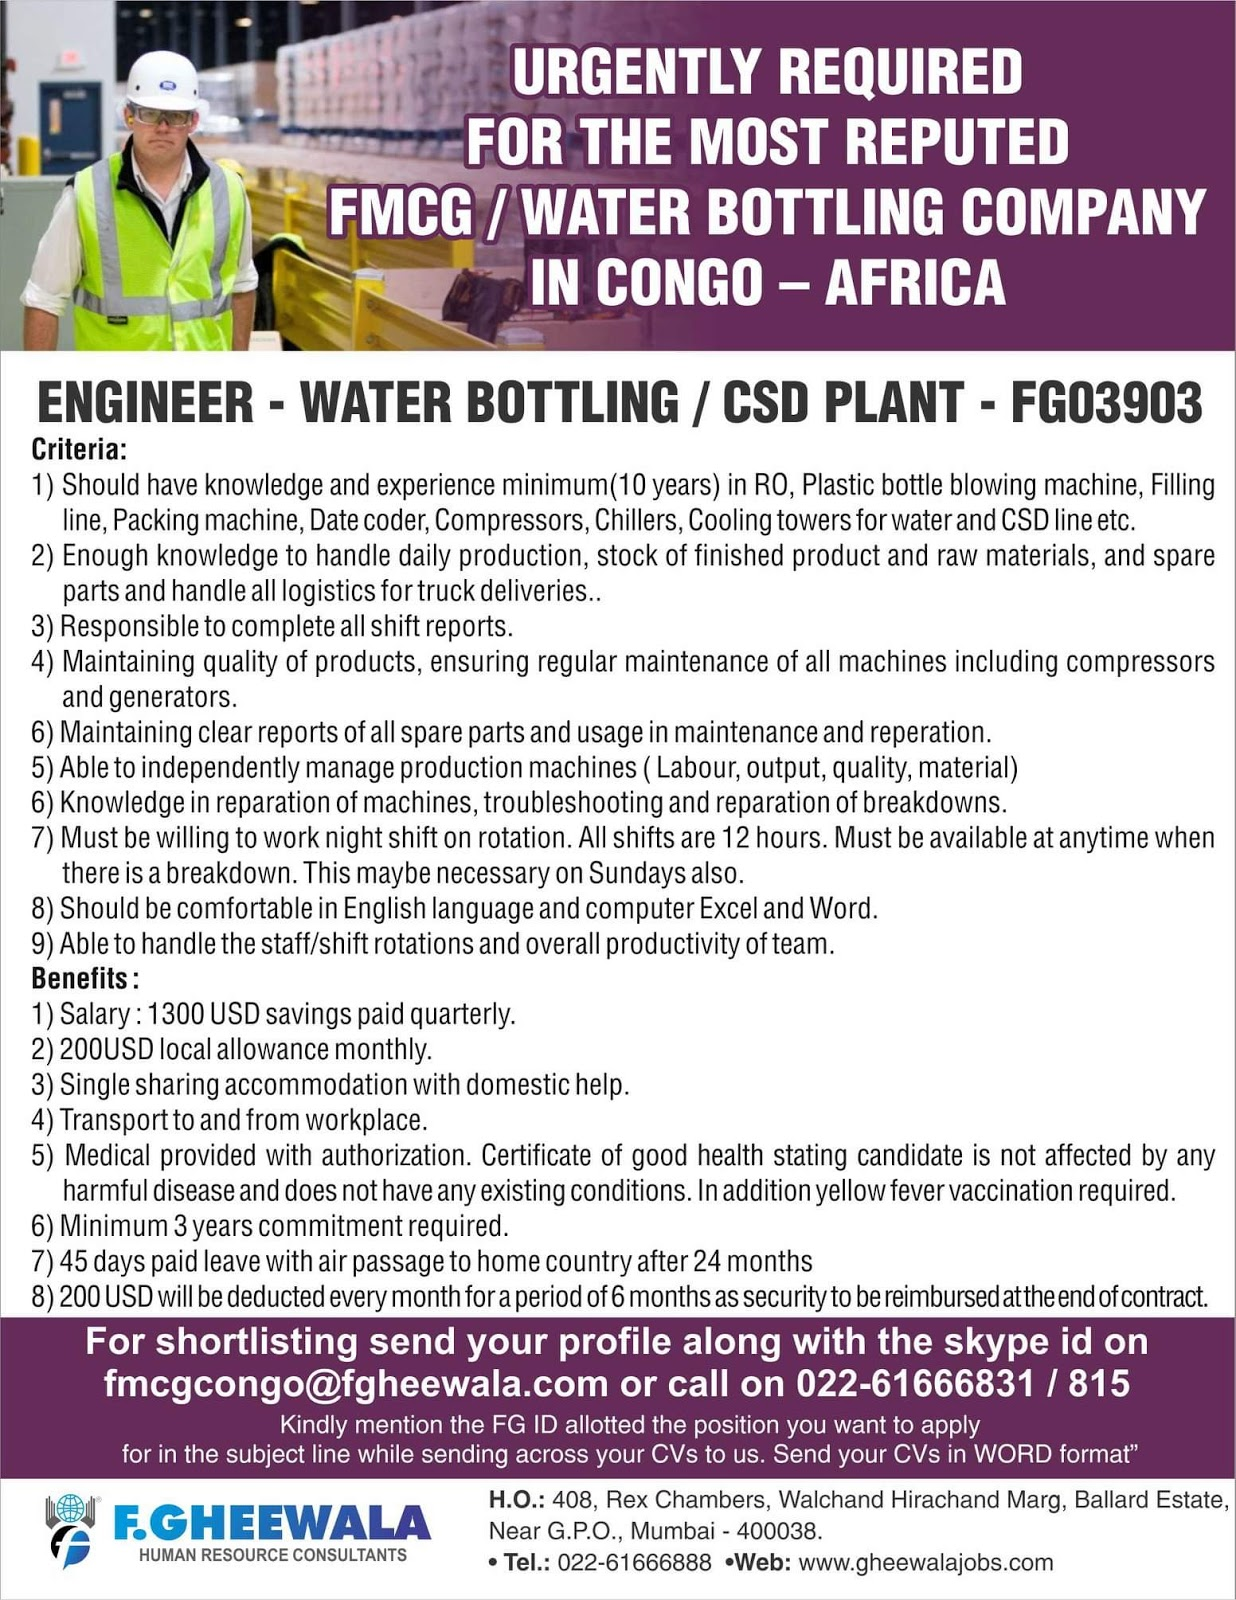 Jobs In Africa-Urgently Required for most Reputed FMCG/Water